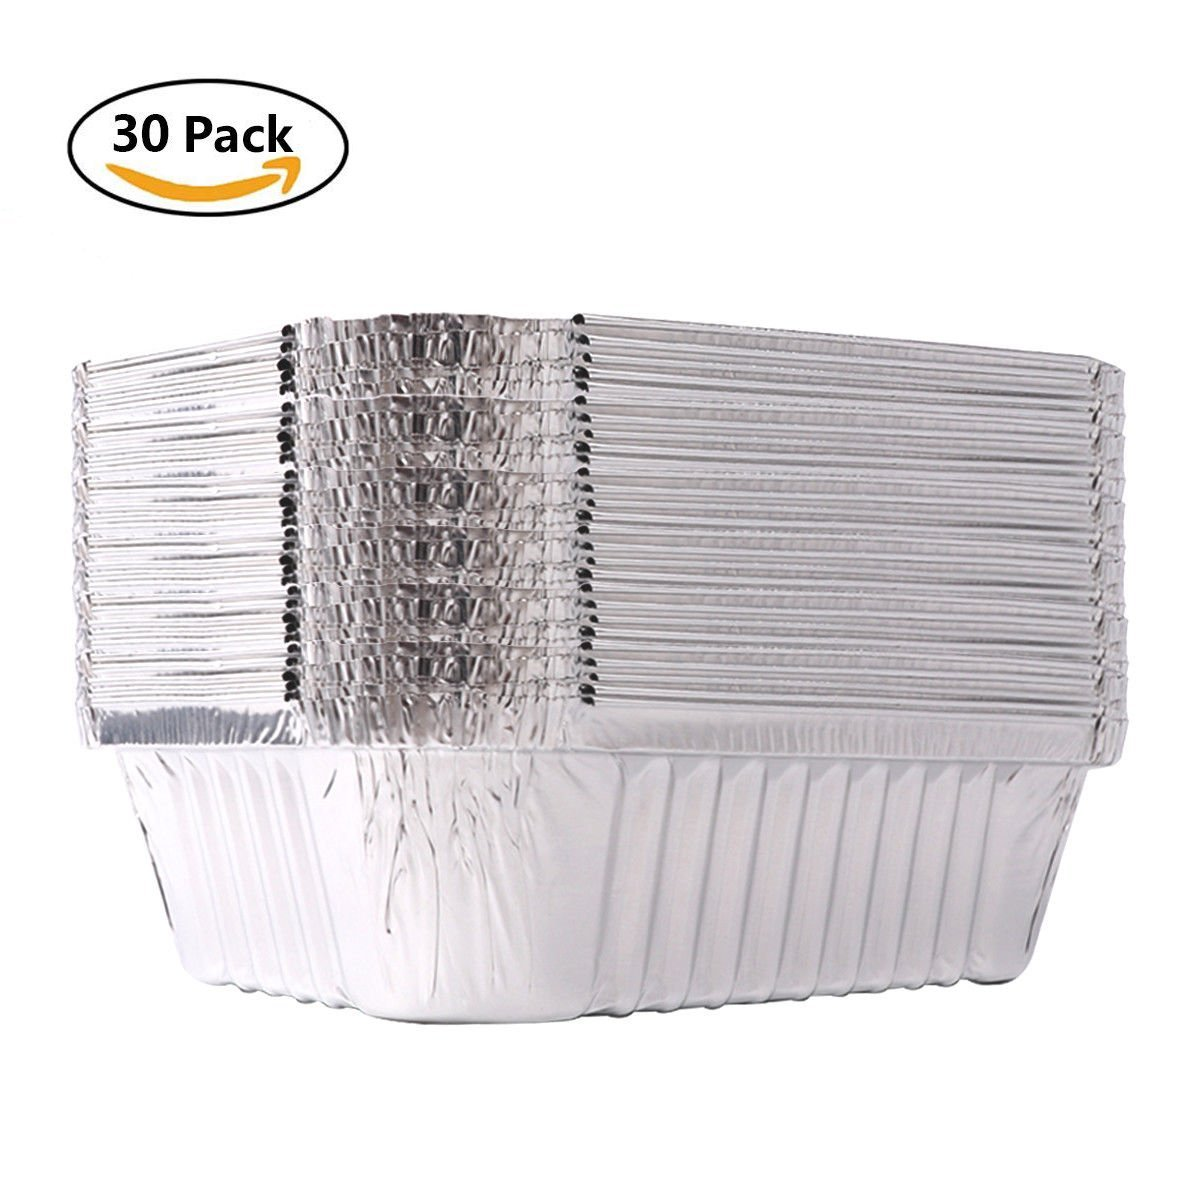 Paradox (30 Pack) Disposable Aluminum Foil Pans,BBQ Party Food Containers Take-Out Containers with Lids for Baking, Roasting, Broiling, Cooking, 7.3'' X 5.5'' X 2.0''(750ml)